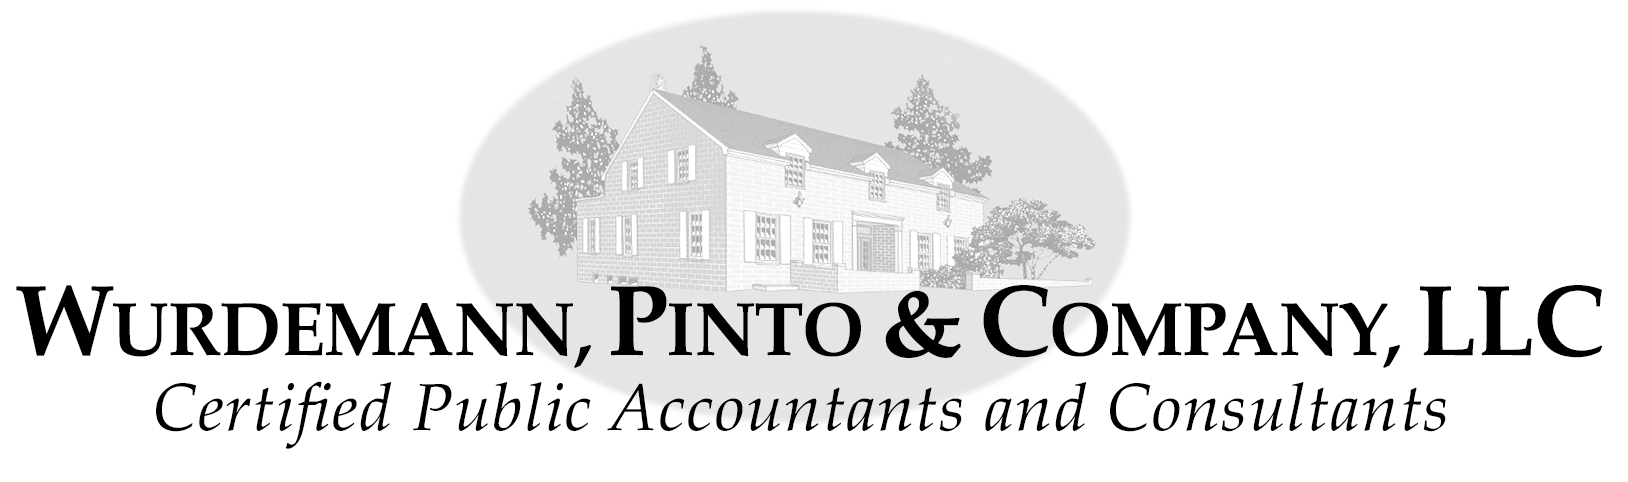 Hackensack, NJ Accounting Firm | QuickAnswers | Wurdemann, Pinto & Co. LLC